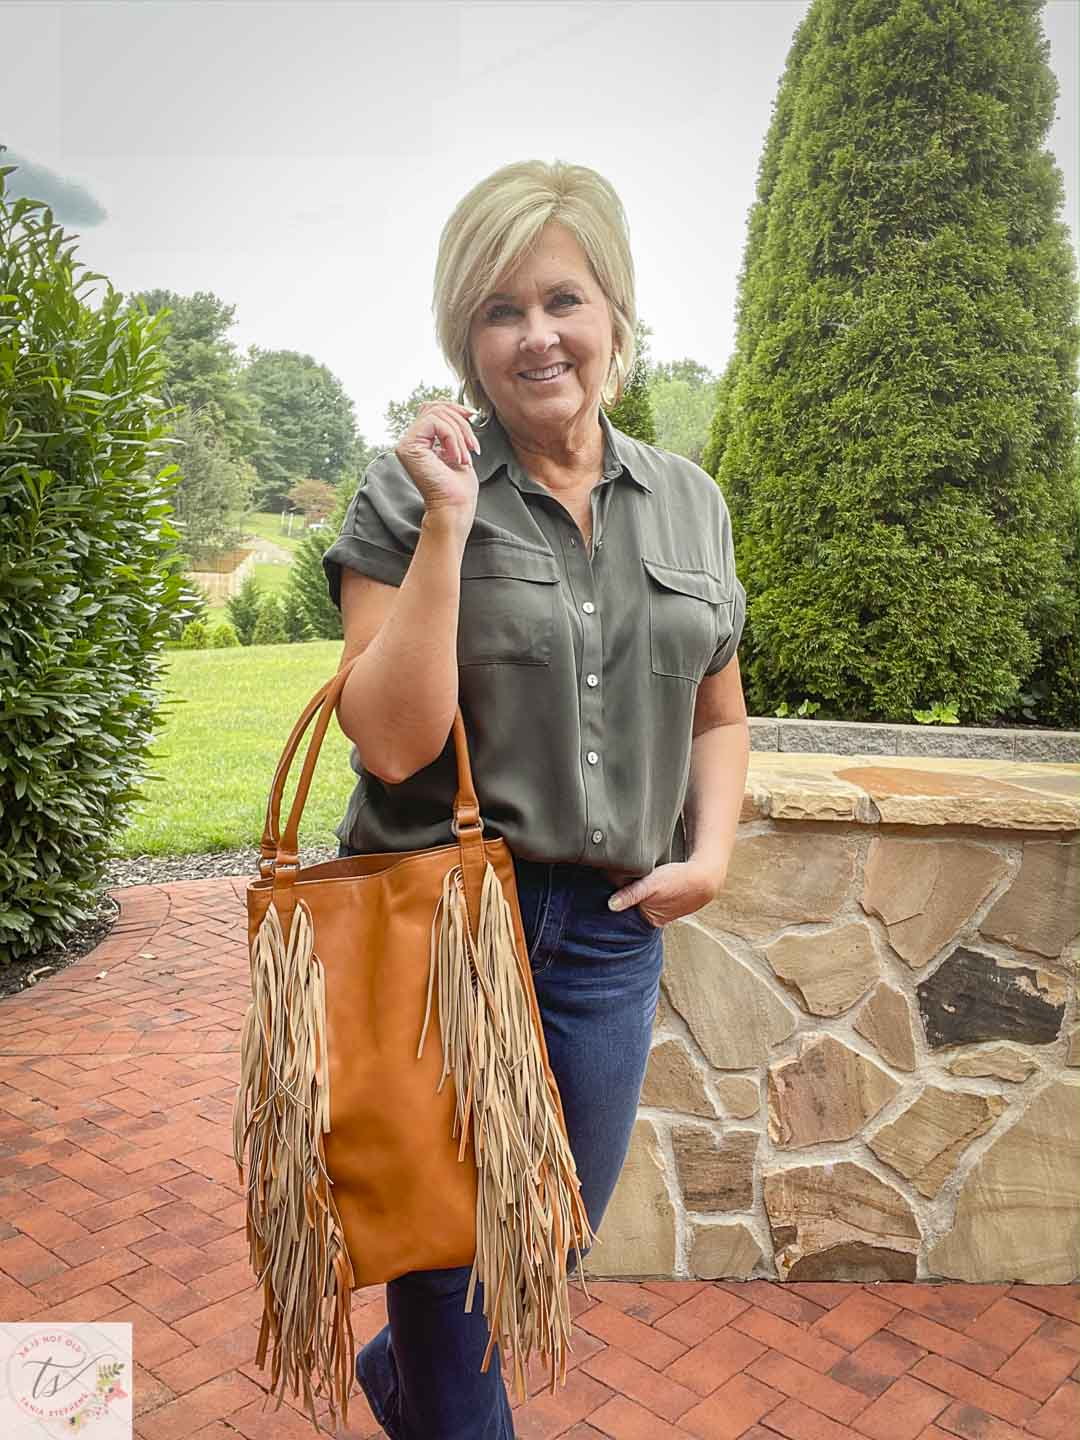 Over 40 Fashion Blogger, Tania Stephens, is wearing an olive button-up shirt and carrying a fringed handbag